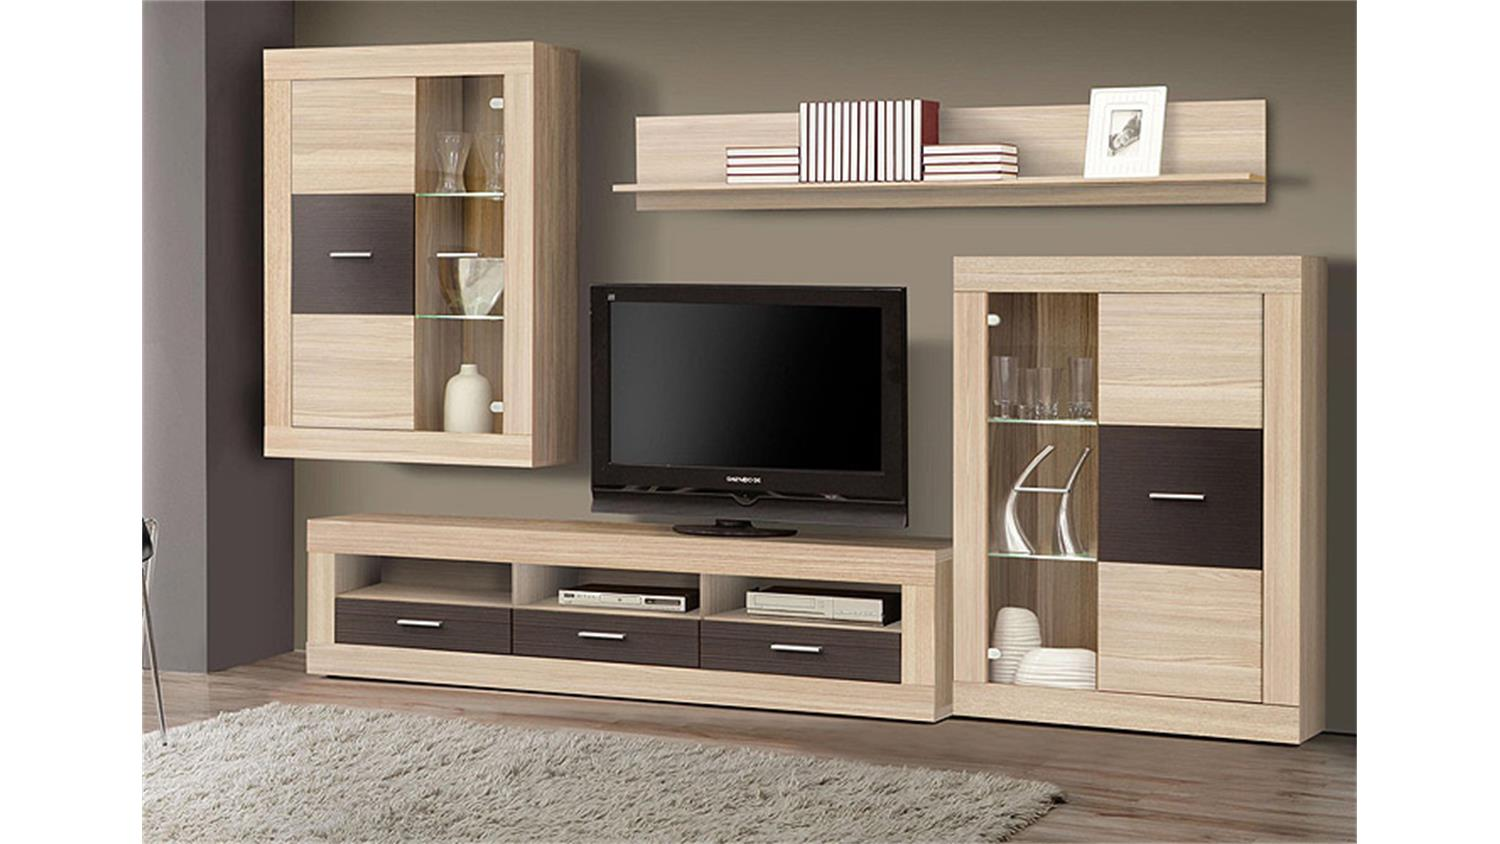 wohnwand gaucho sonoma eiche schoko led. Black Bedroom Furniture Sets. Home Design Ideas